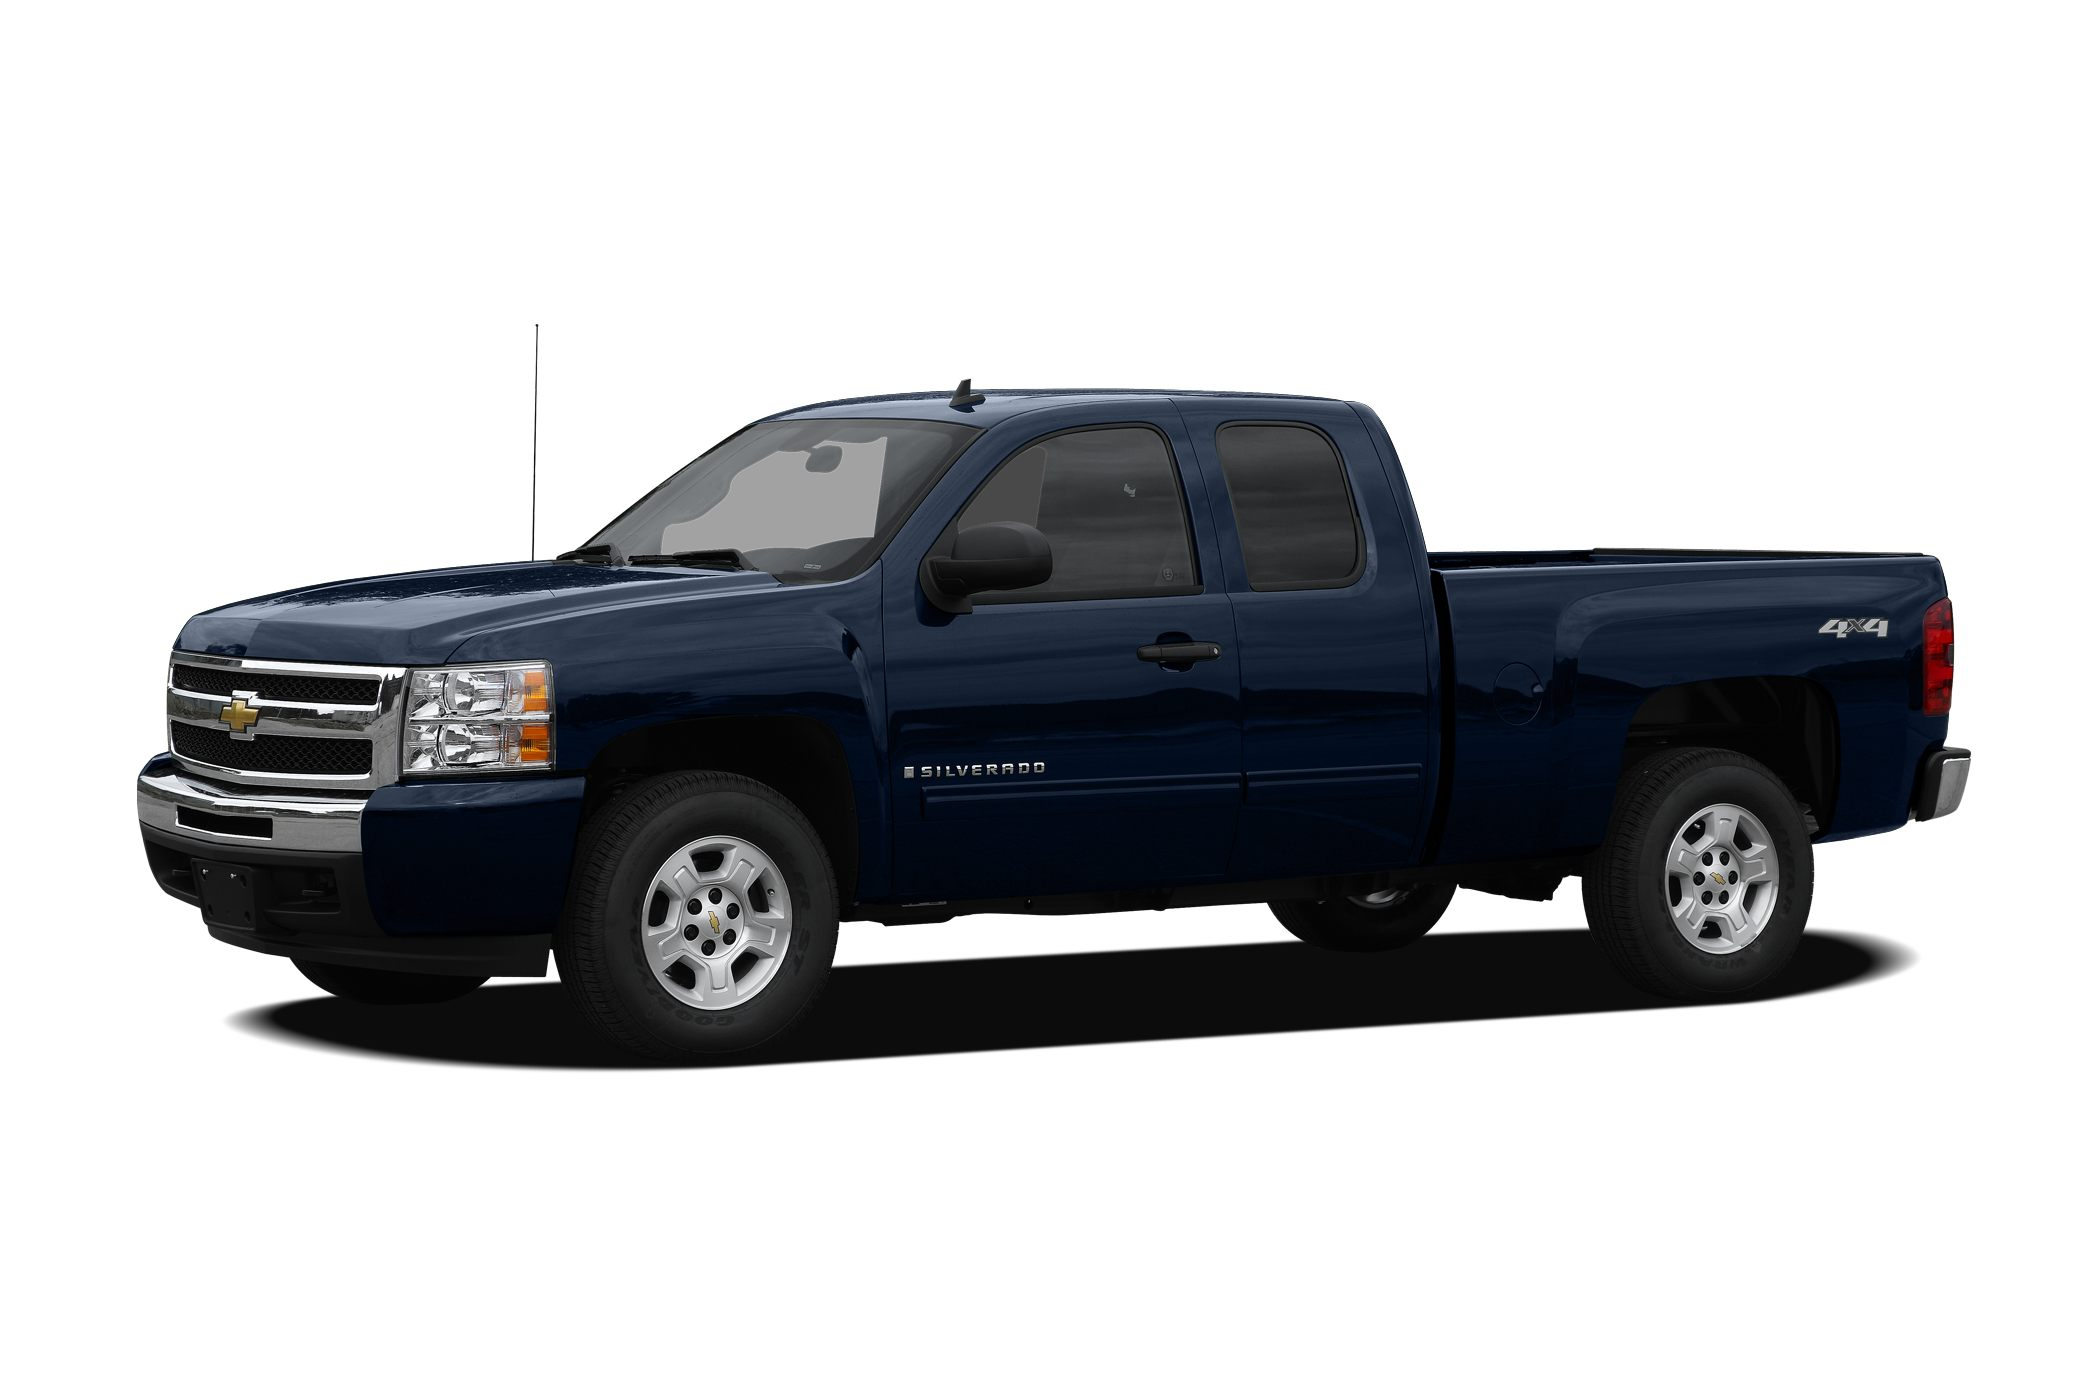 2010 Chevrolet Silverado 1500 Ltz 4x4 Extended Cab 6 6 Ft Box 143 5 In Wb Pictures